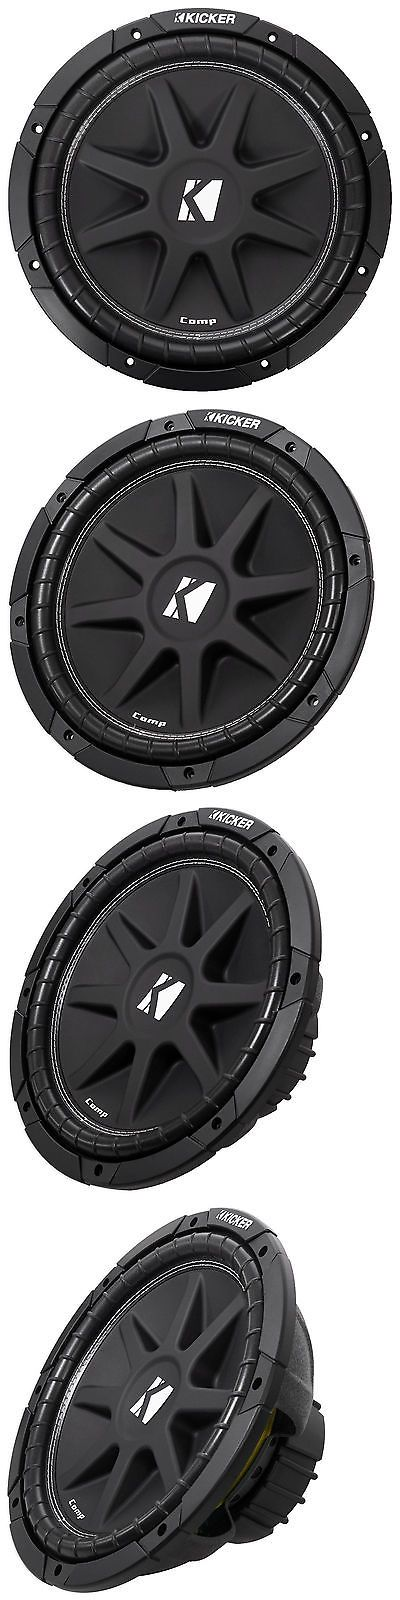 Car Subwoofers: Kicker 43C124 Comp 12 300 Watt Svc 4-Ohm Car Audio Subwoofer Sub BUY IT NOW ONLY: $79.95